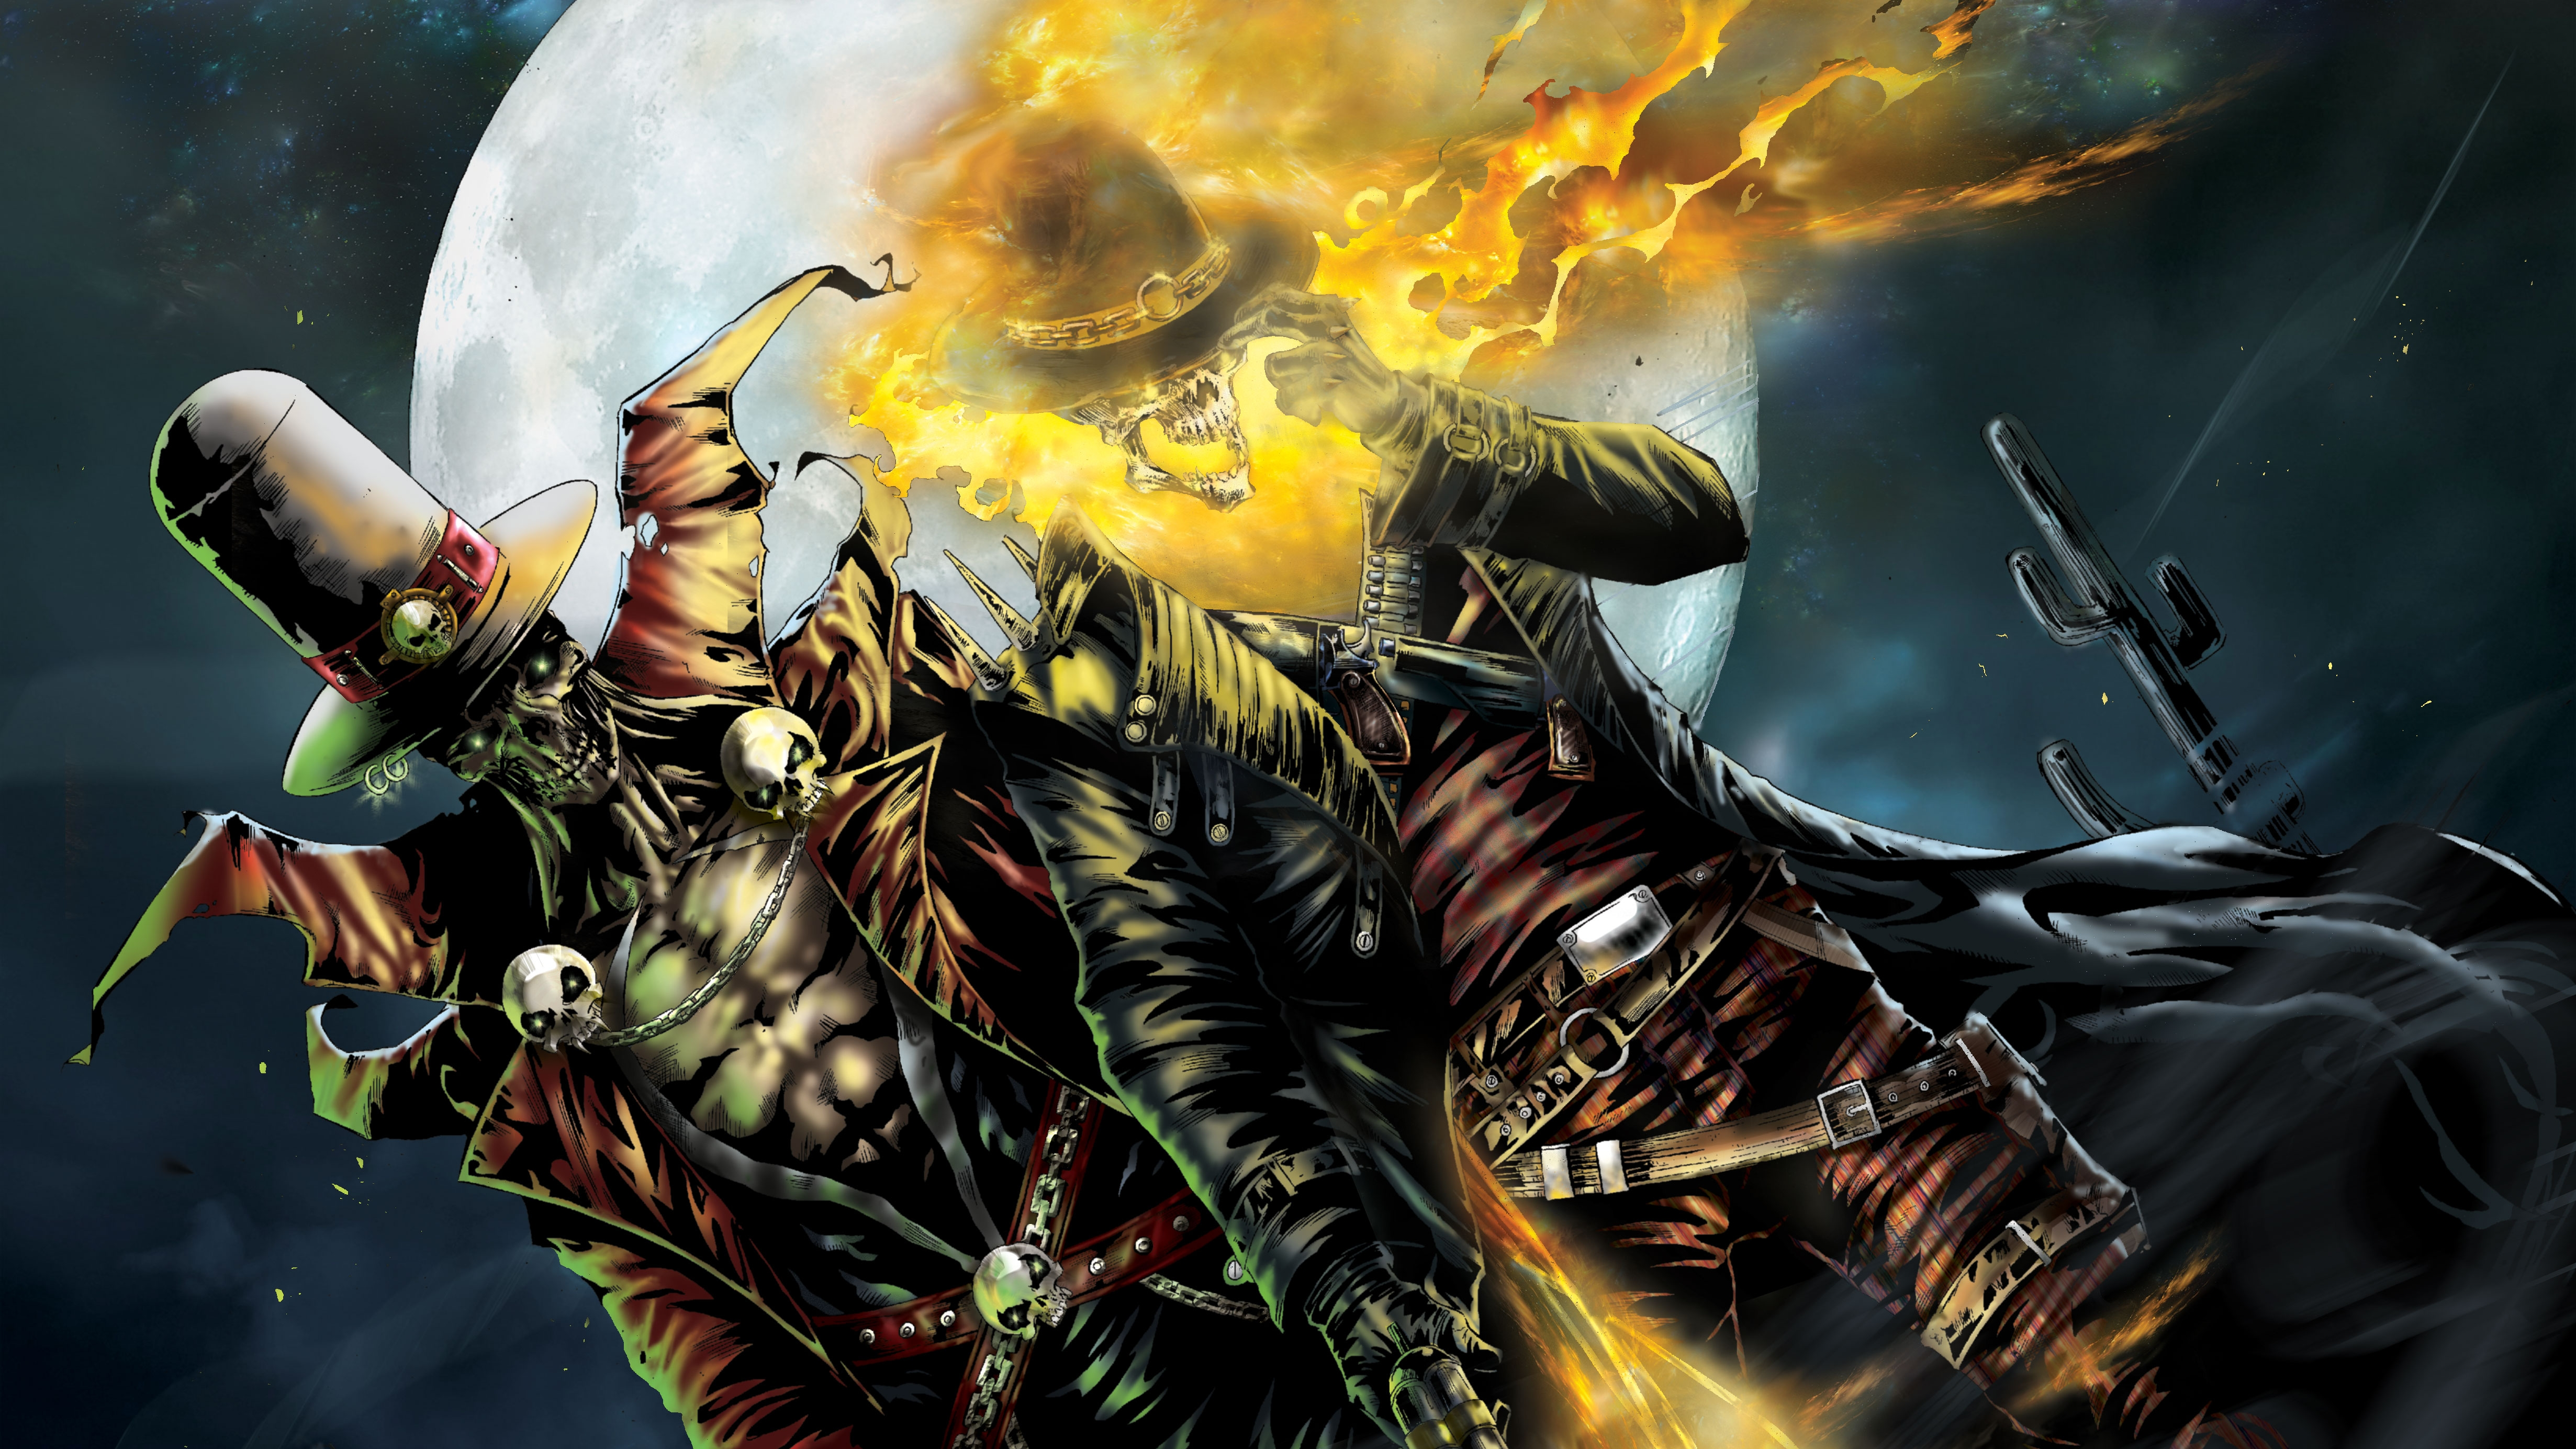 28 4k Ultra Hd Ghost Rider Wallpapers Background Images